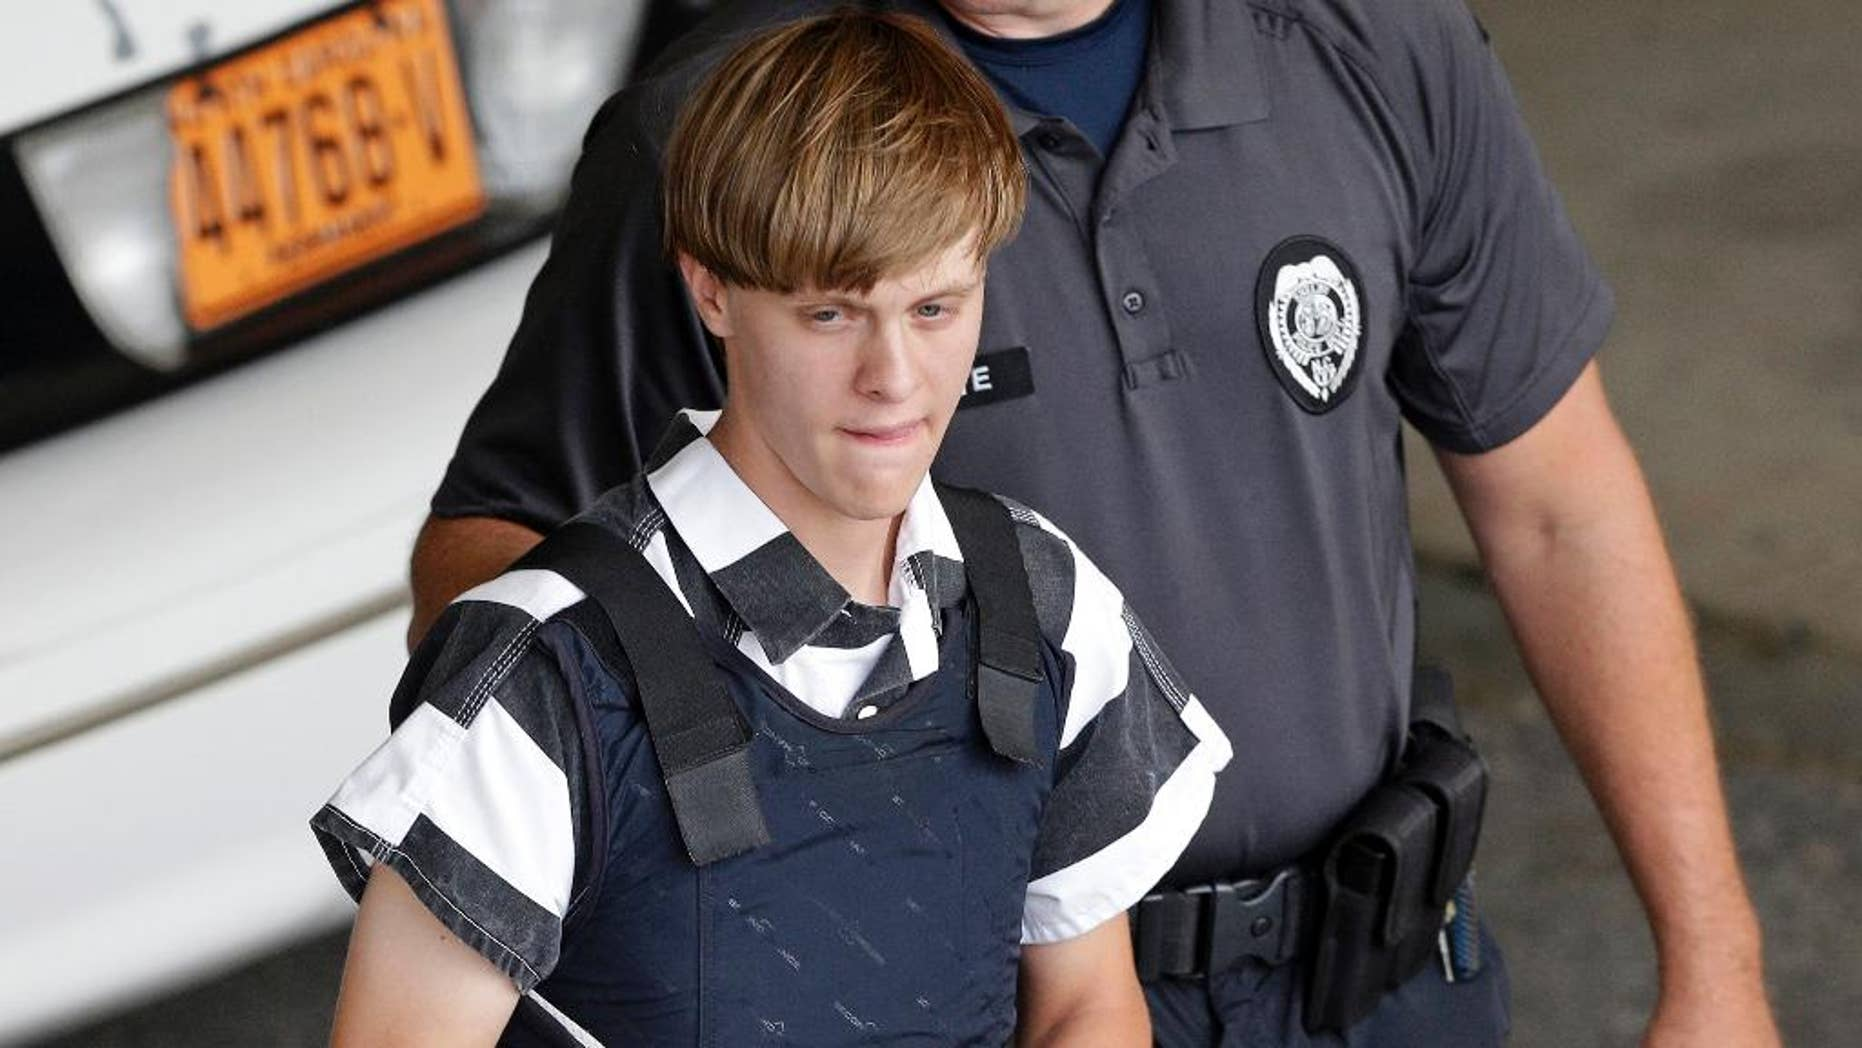 FILE - In this June 18, 2015 file photo, Charleston, S.C., shooting suspect Dylann Storm Roof is escorted from the Cleveland County Courthouse in Shelby, N.C. The sentencing phase of Roof's federal trial begins Wednesday, Jan. 4, 2016, in Charleston. He could face the death penalty or life in prison. (AP Photo/Chuck Burton, File)